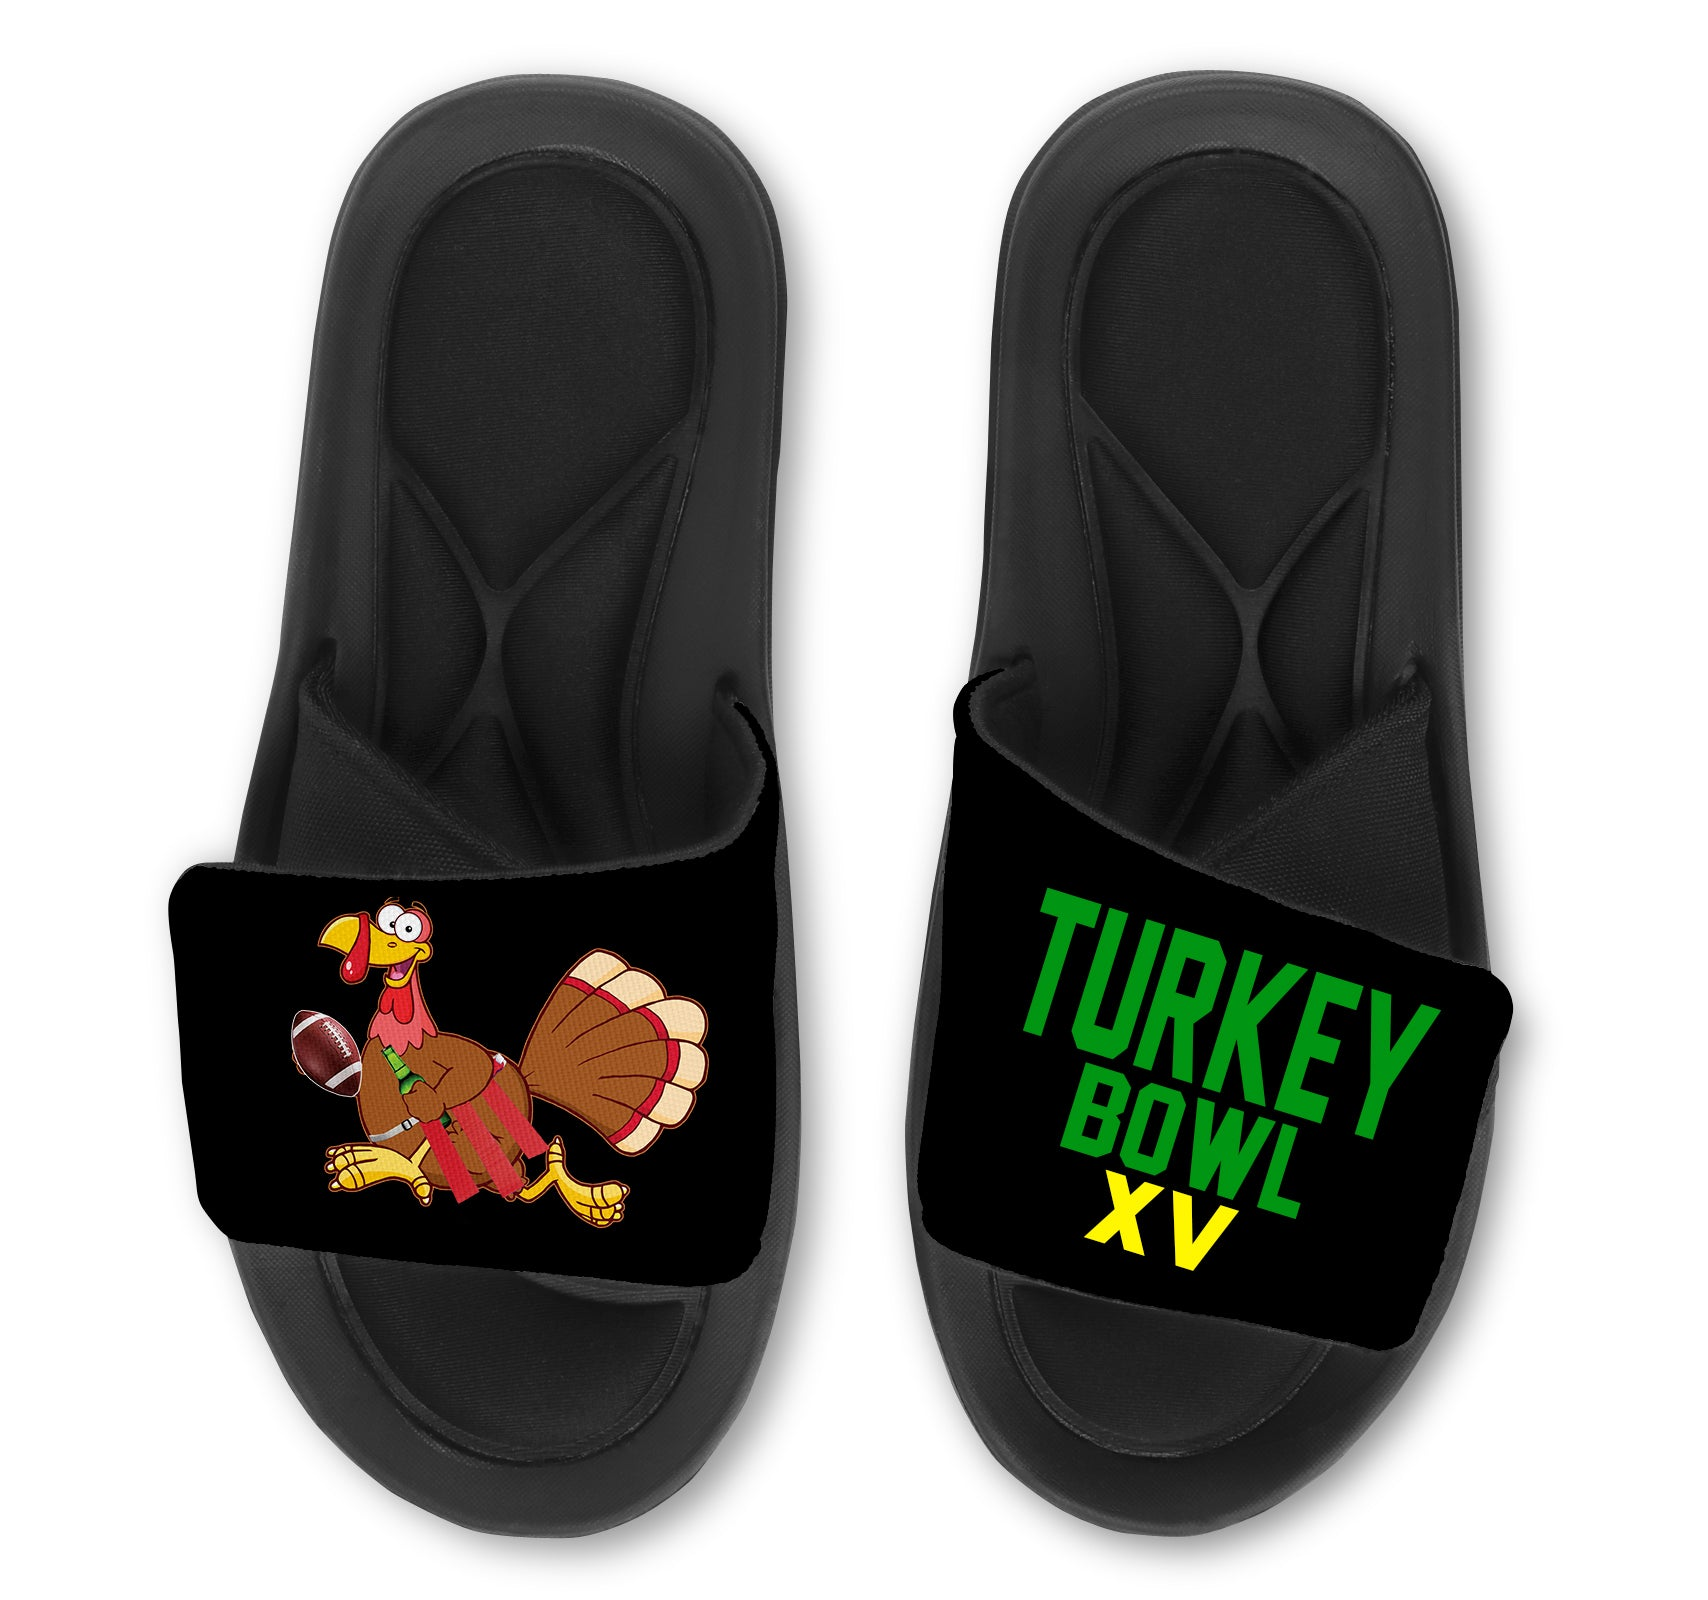 Custom Personalized Slides - Customize with Your Information!